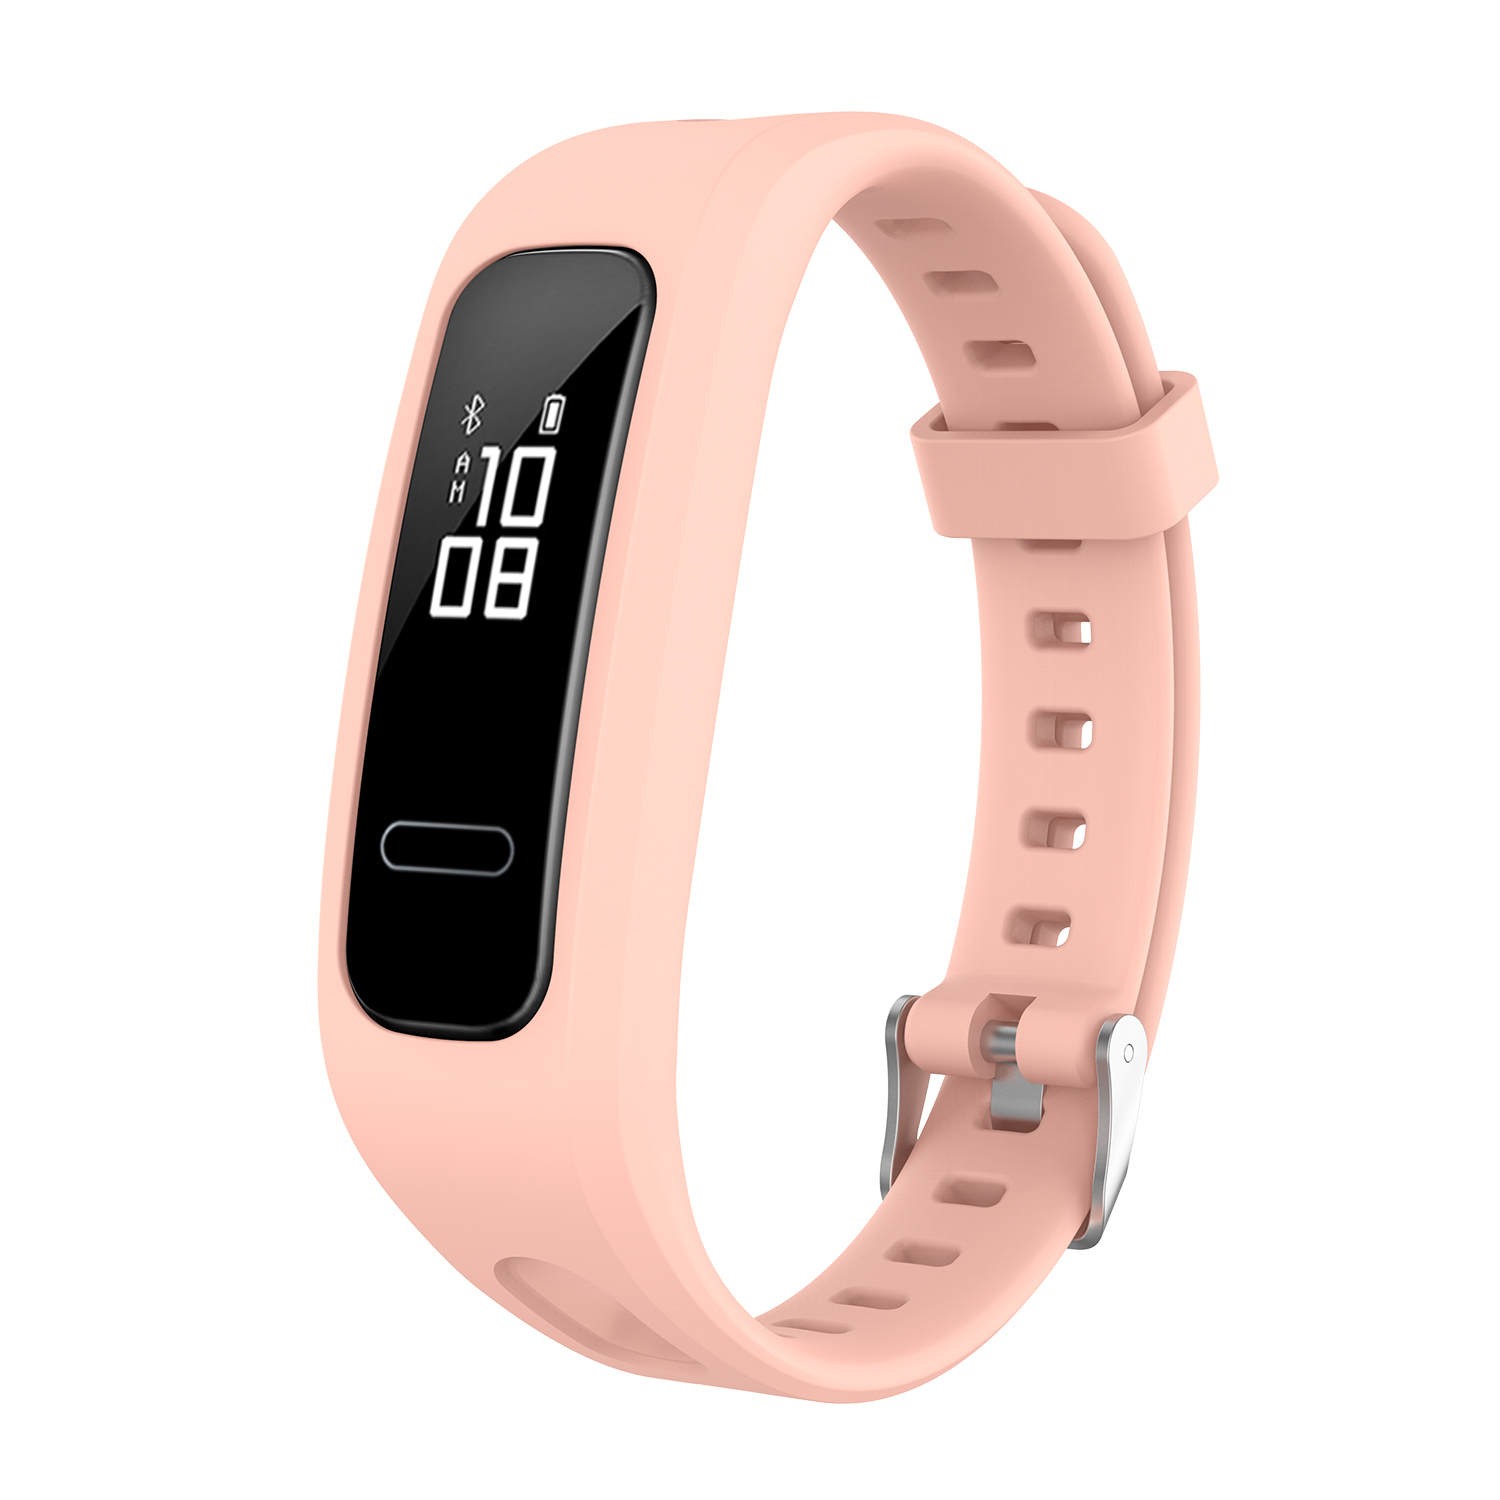 2019 Silicone Sport Strap for Huawei Band 3E Smart Watch Adjustable Replacement Bracelet for Huawei Honor 4 Running Accessories in Smart Accessories from Consumer Electronics